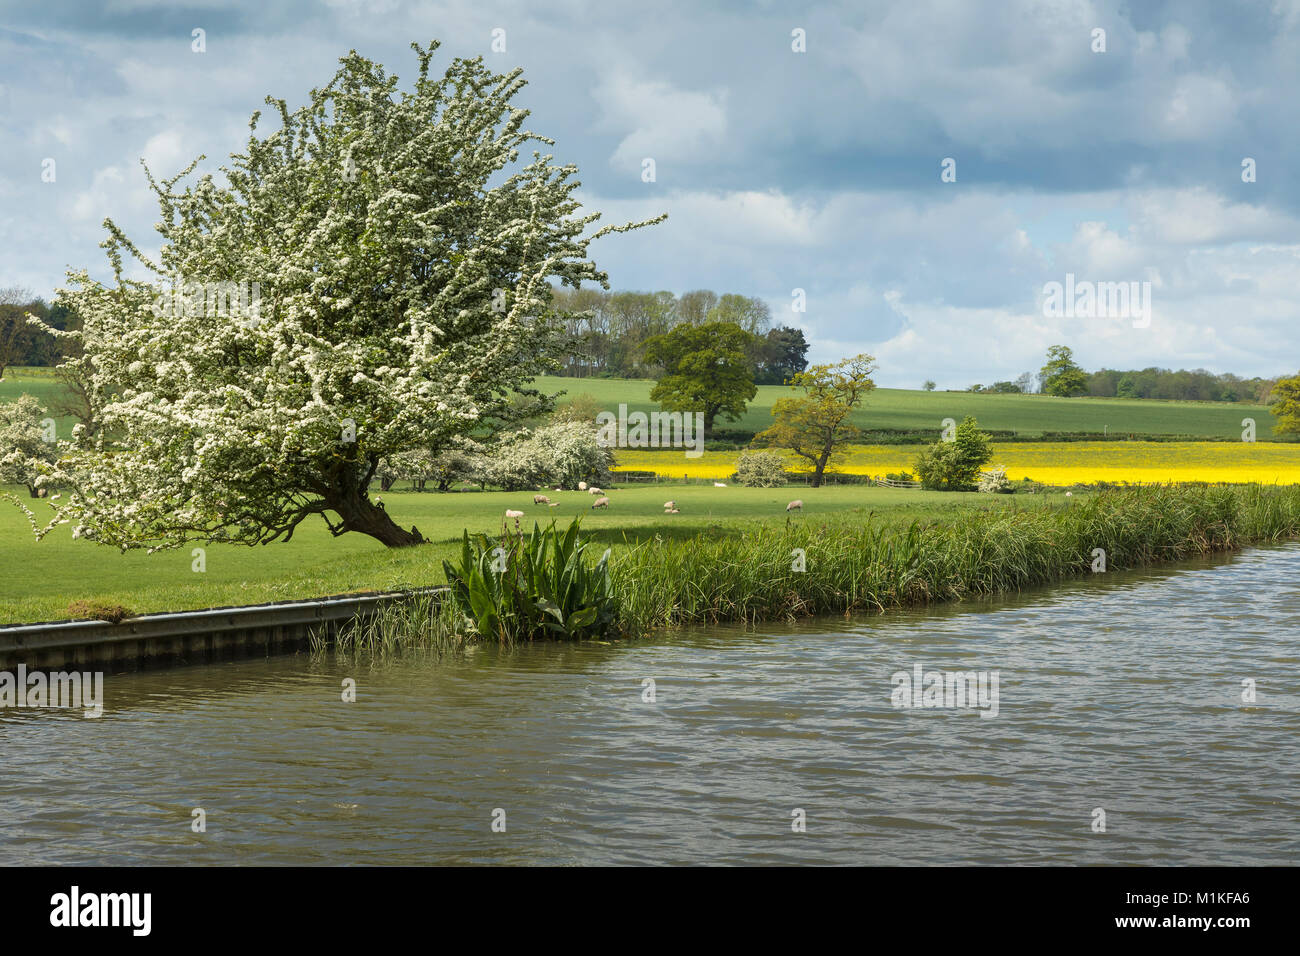 An image of a Hawthorne tree by the Grand Union Canal in Leicestershire, England, UK - Stock Image